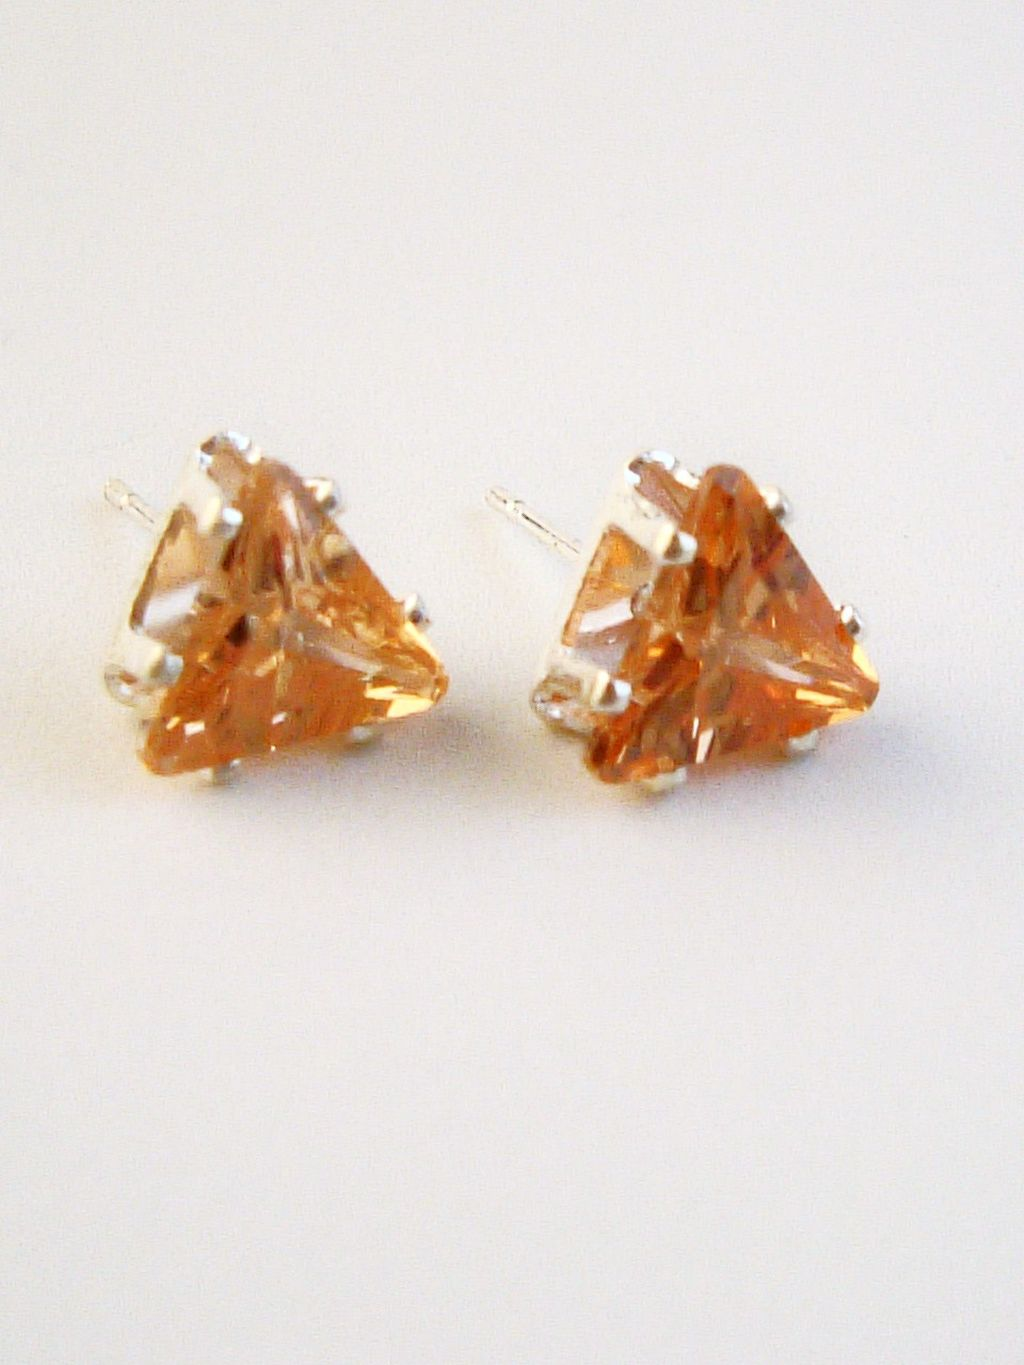 Topaz Triangle Cut Silver Stud Earrings Genuine CZ Cubic Zirconia